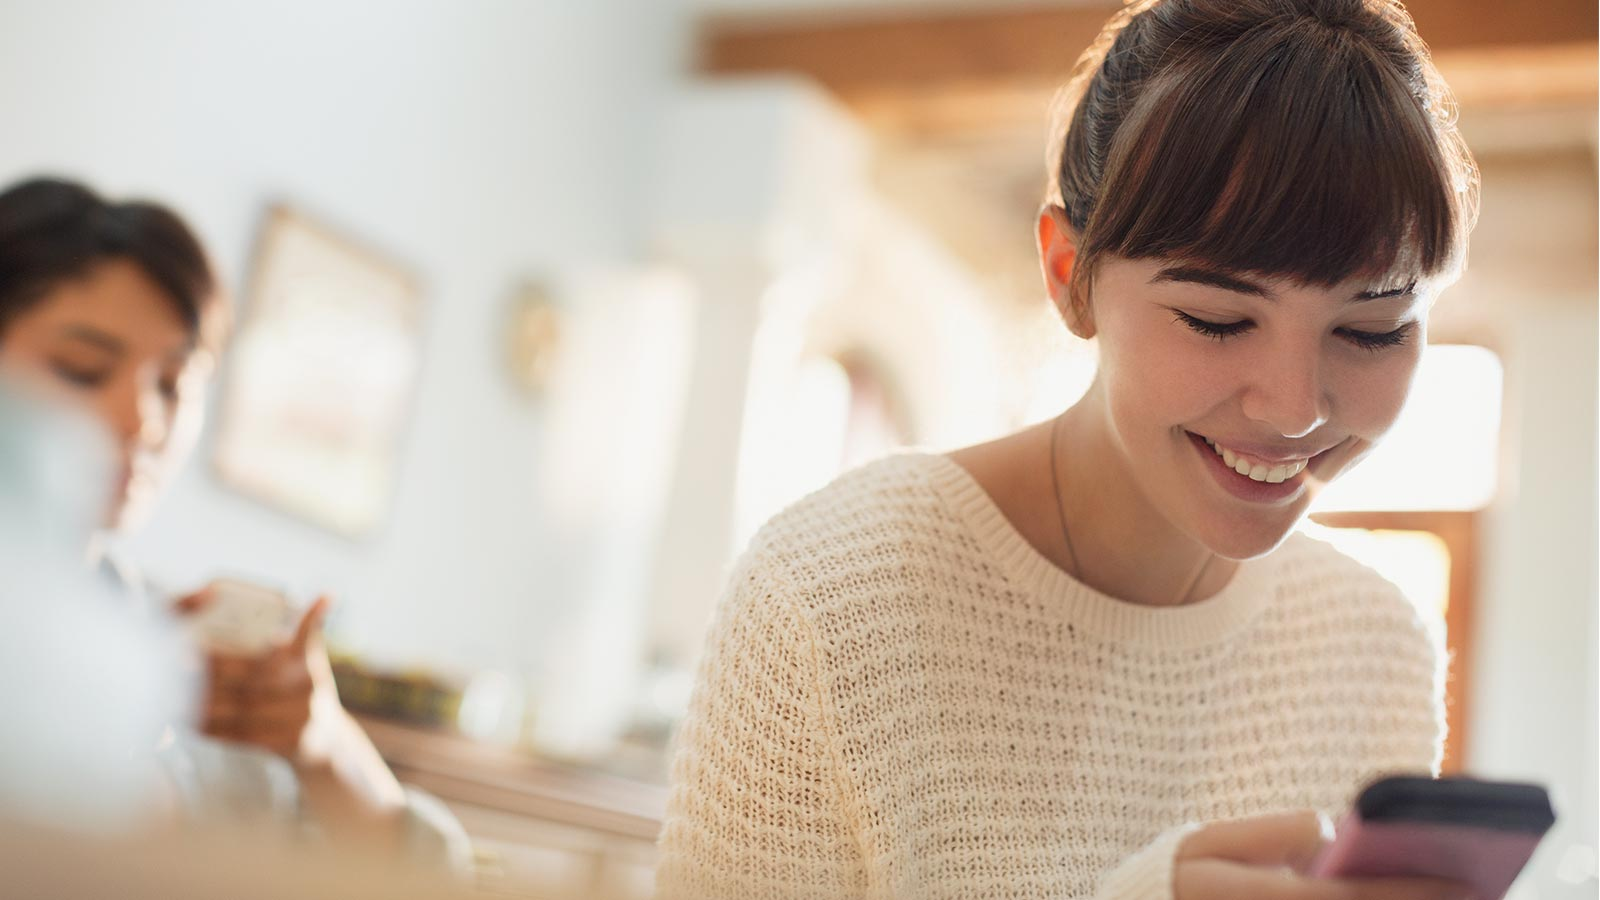 Woman smiling at her phone and making a payment on her device.